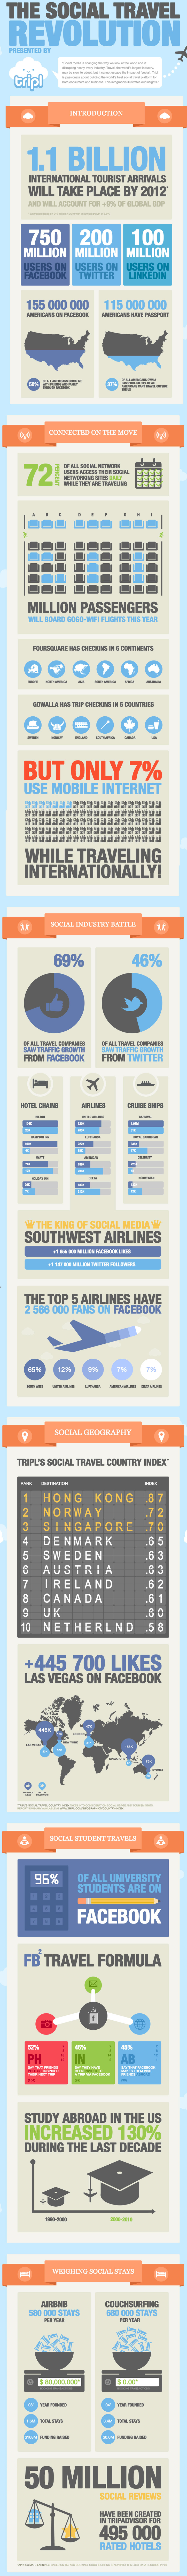 Infographic The Social Travel Revolution Hi Res The Social Travel Revolution (Infographic)